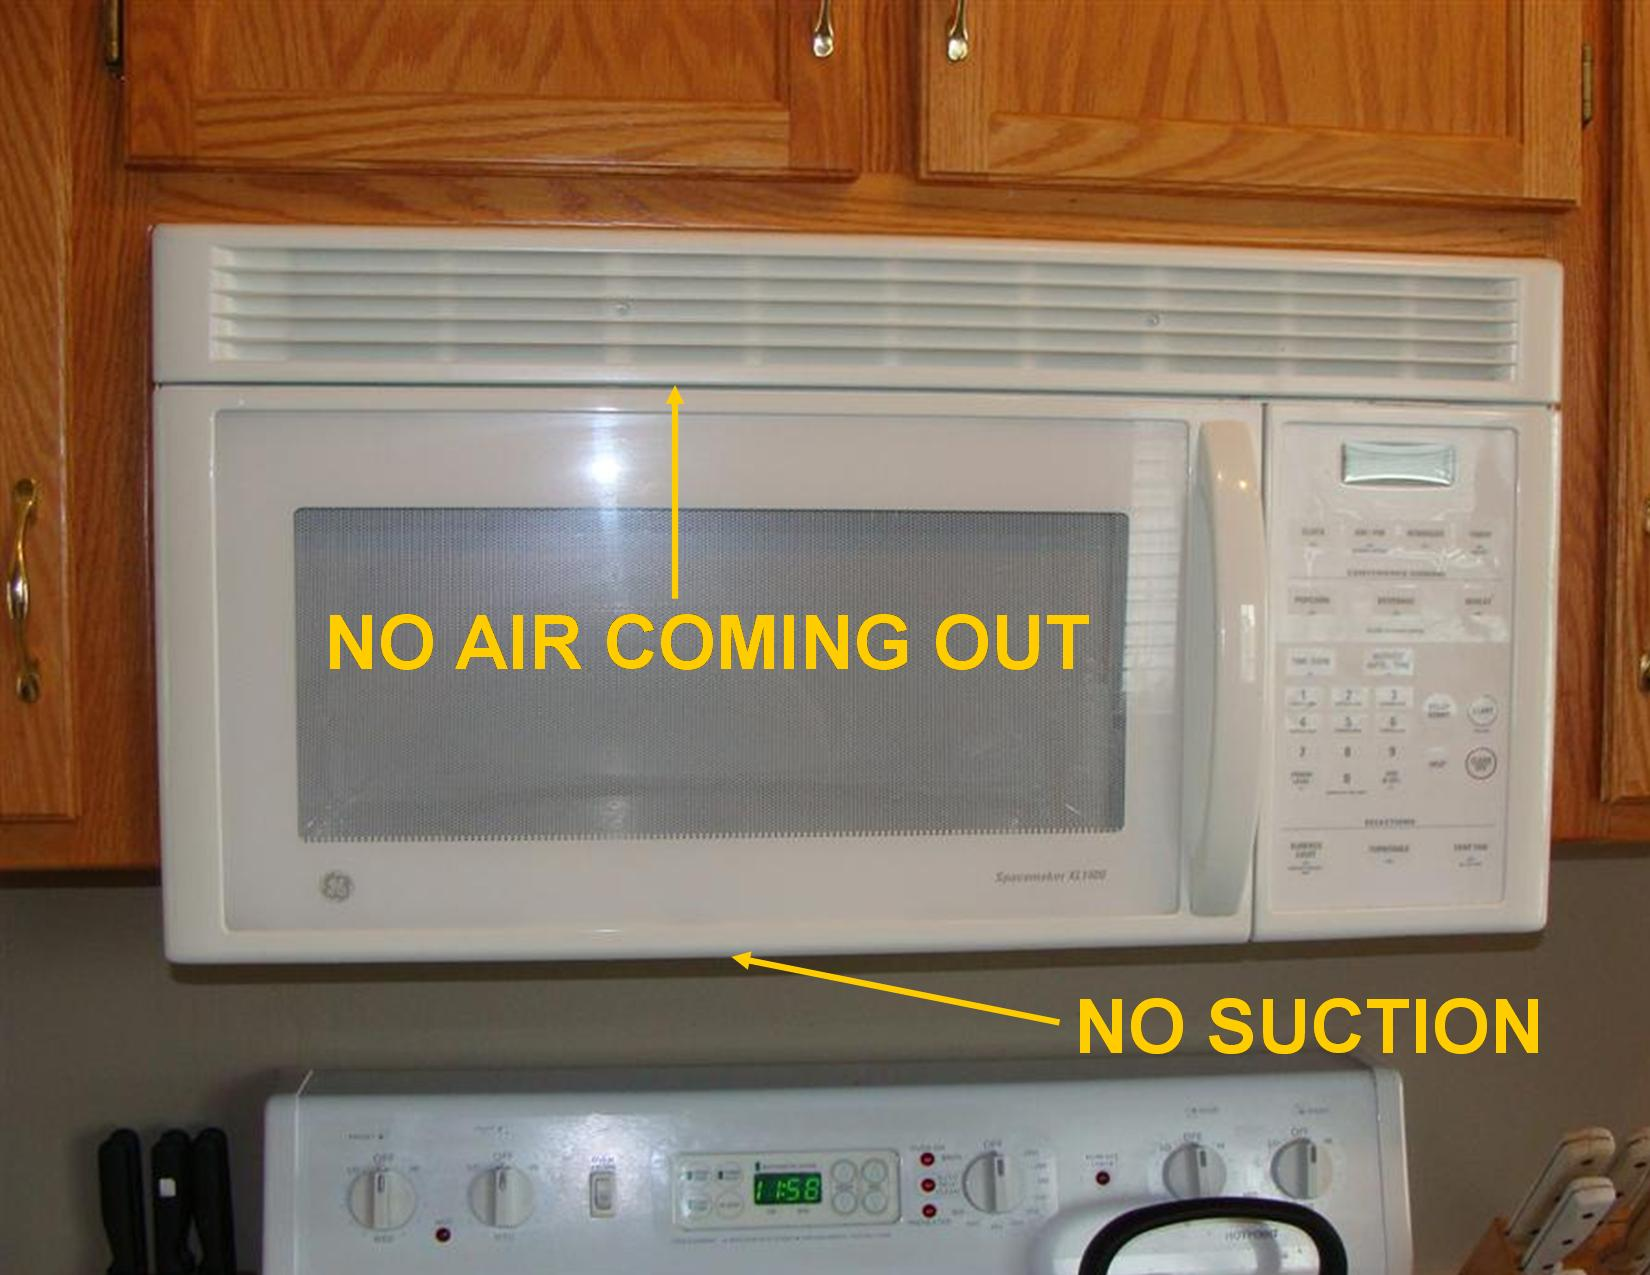 Defects With Range Hood Fans